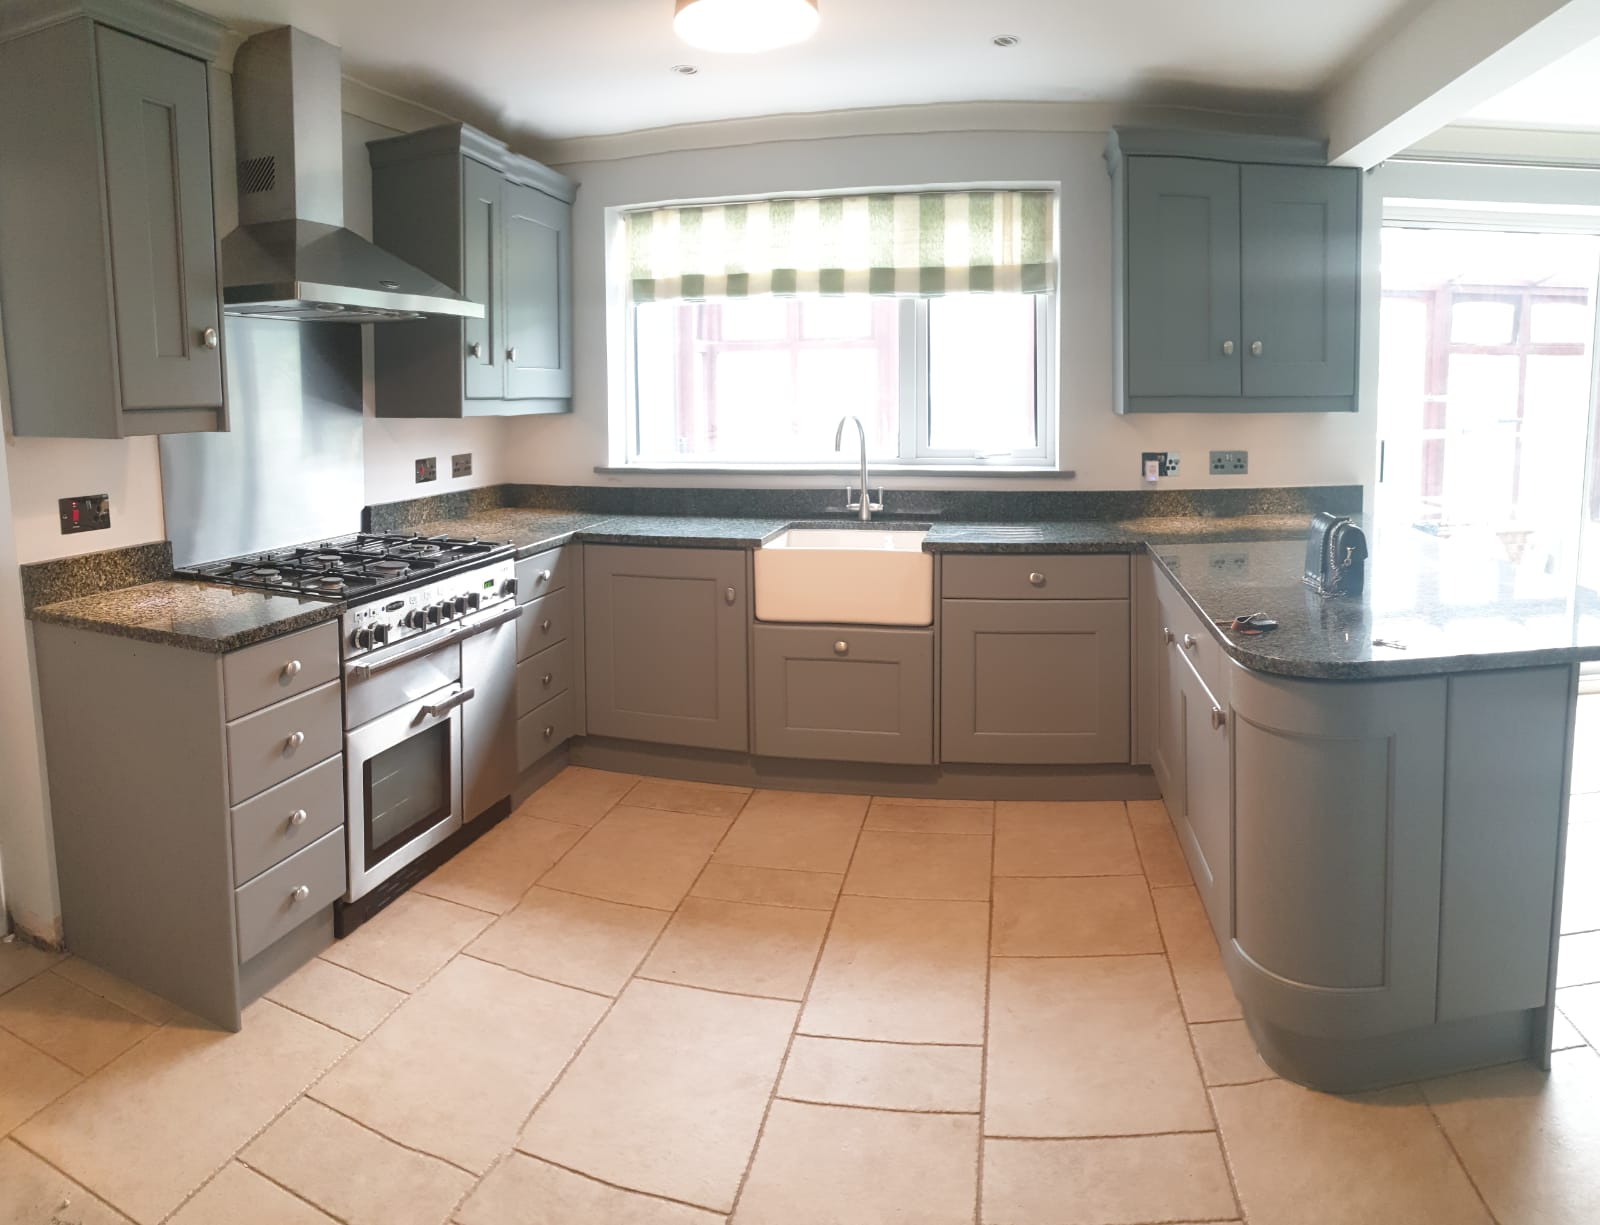 Kitchen Respray and Spray Paint Kitchen Cabinets Costs ...